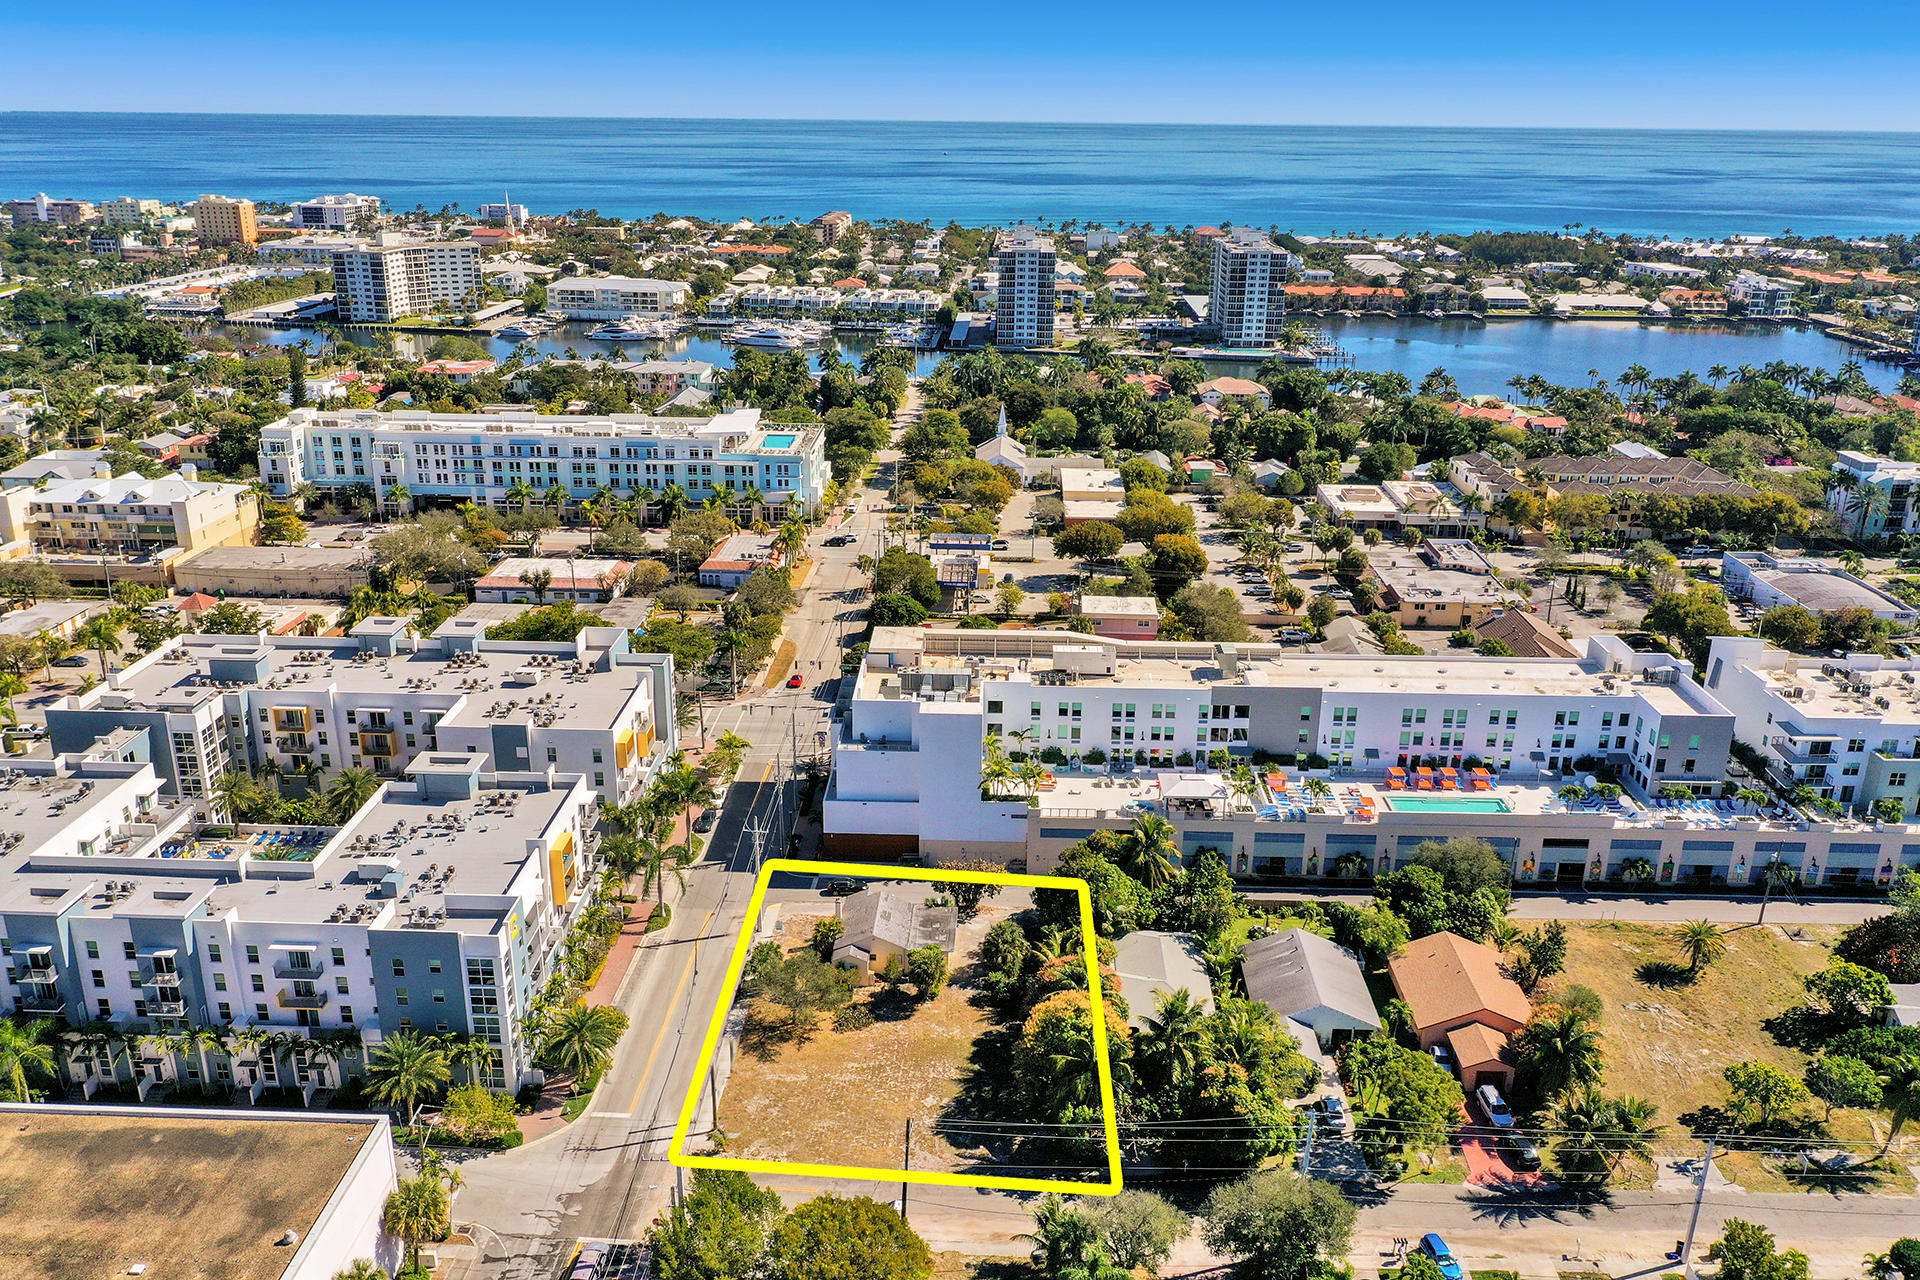 408 2nd Street, Delray Beach, Florida 33483, 2 Bedrooms Bedrooms, ,2 BathroomsBathrooms,Single Family Detached,For Sale,2nd,RX-10688299